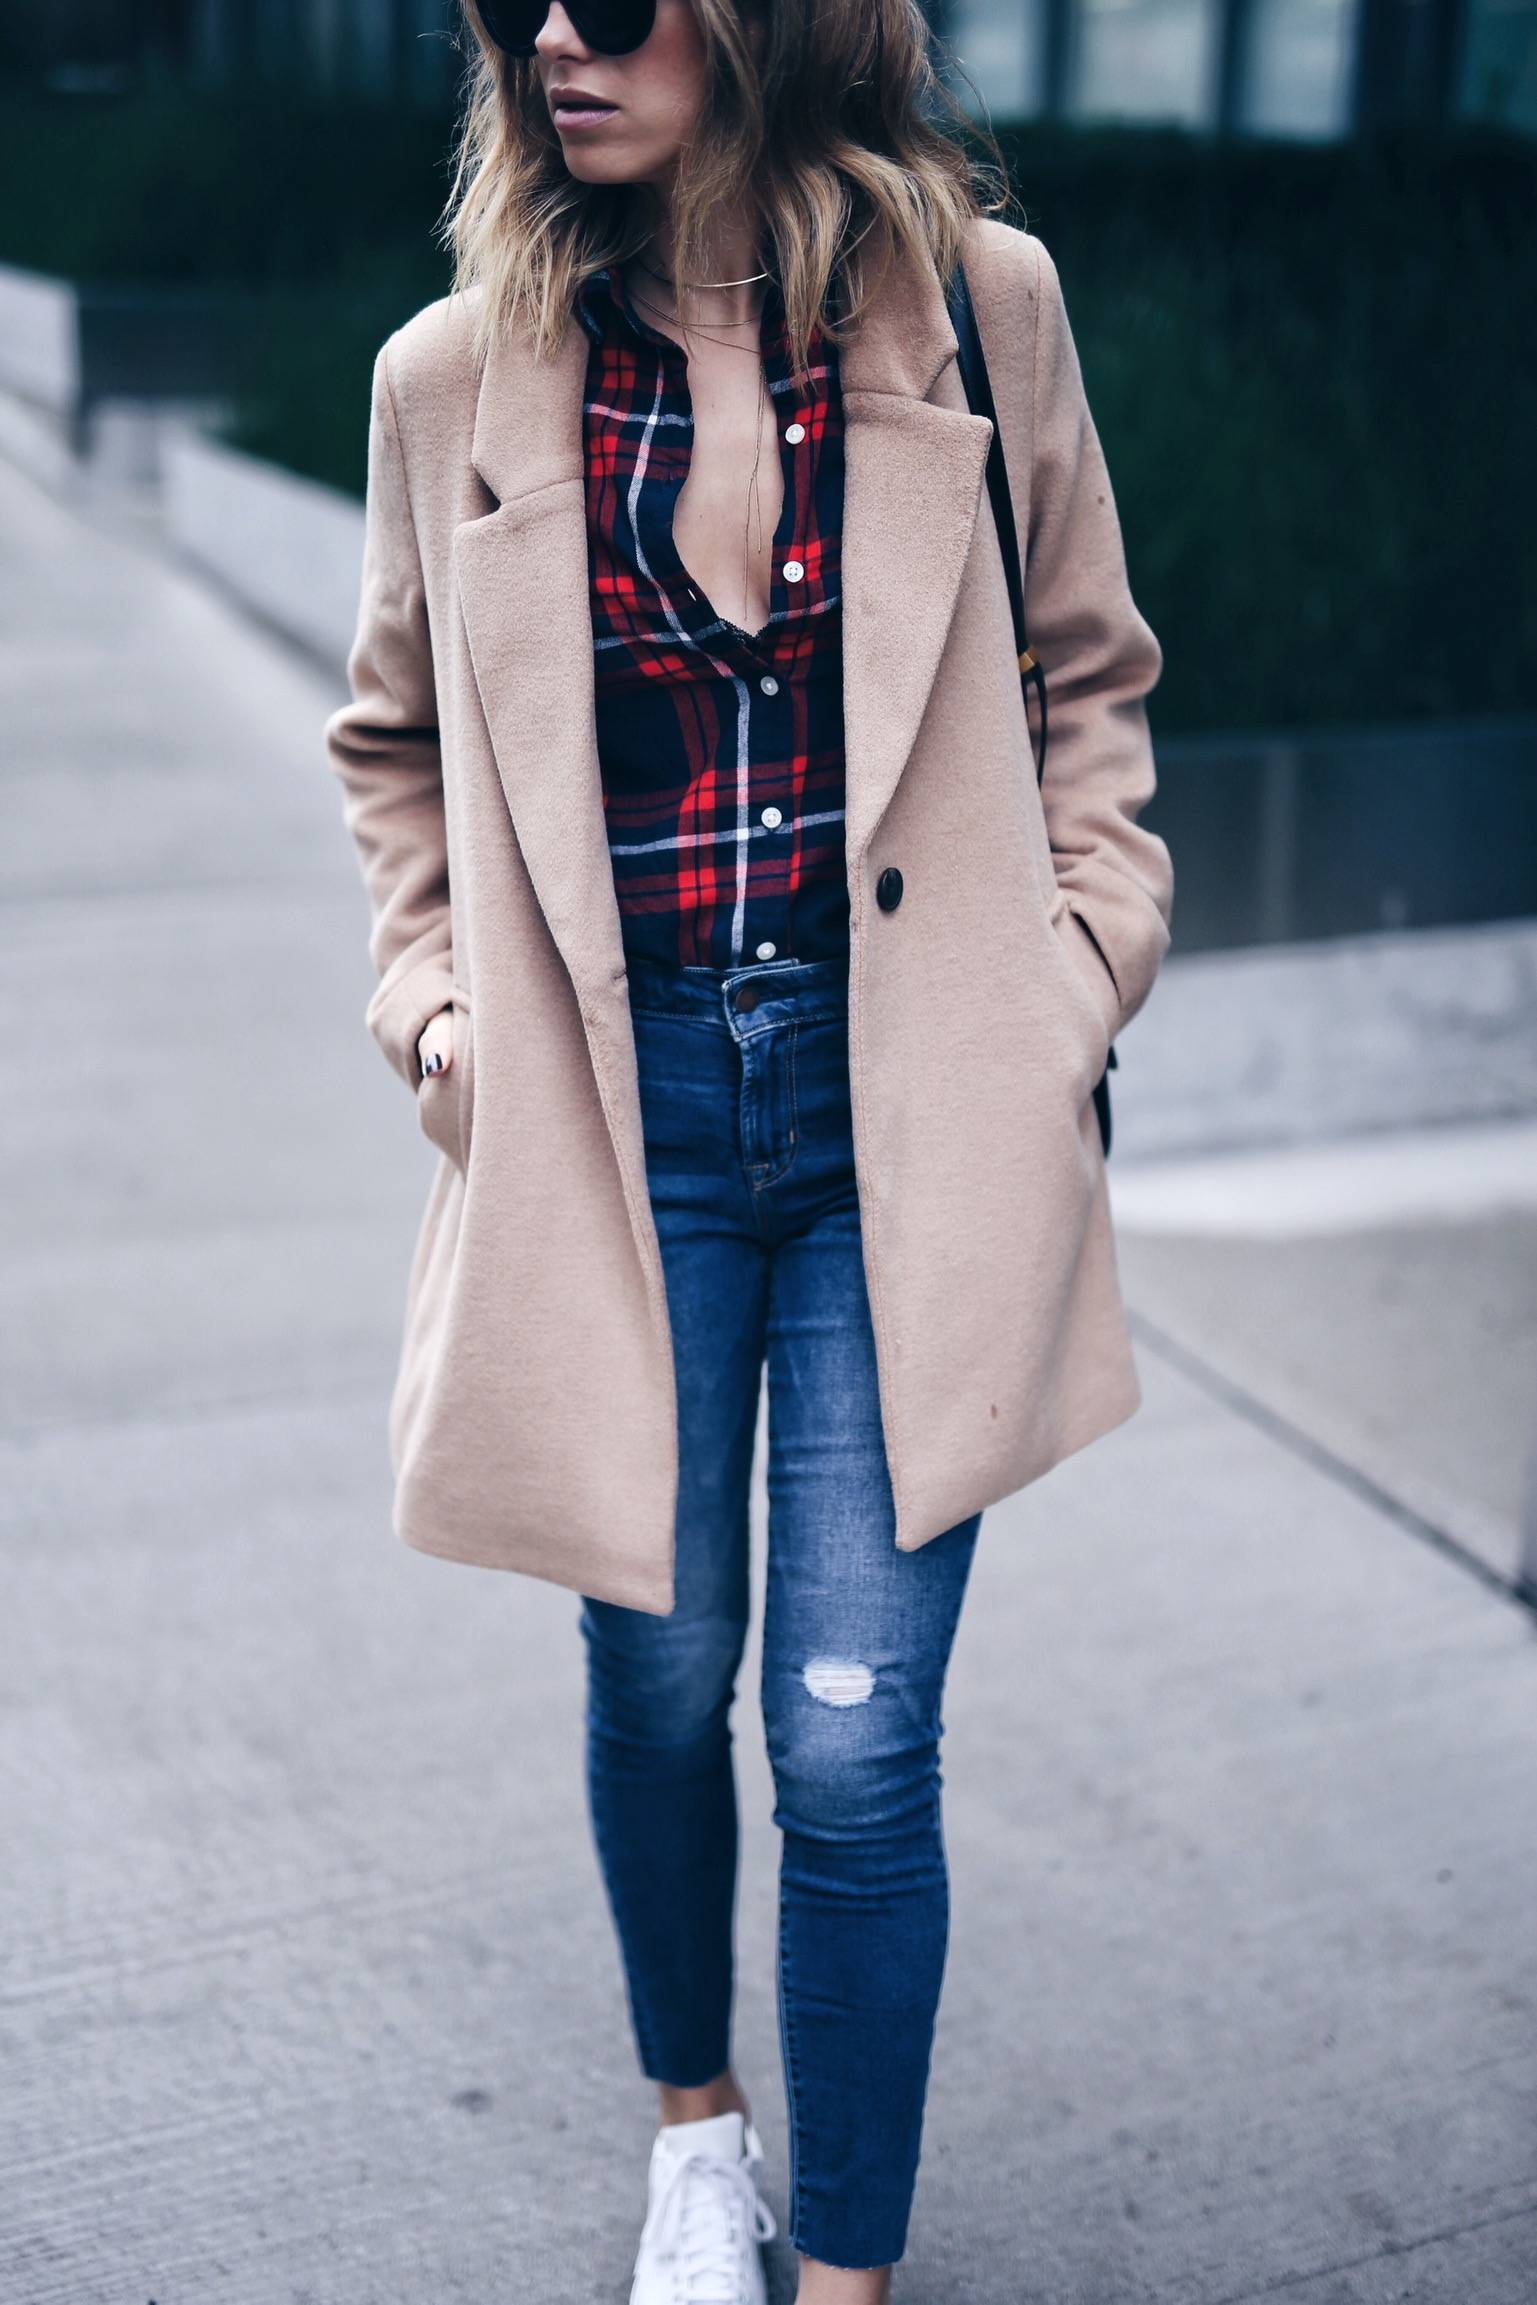 old navy plaid, camel coat, denim